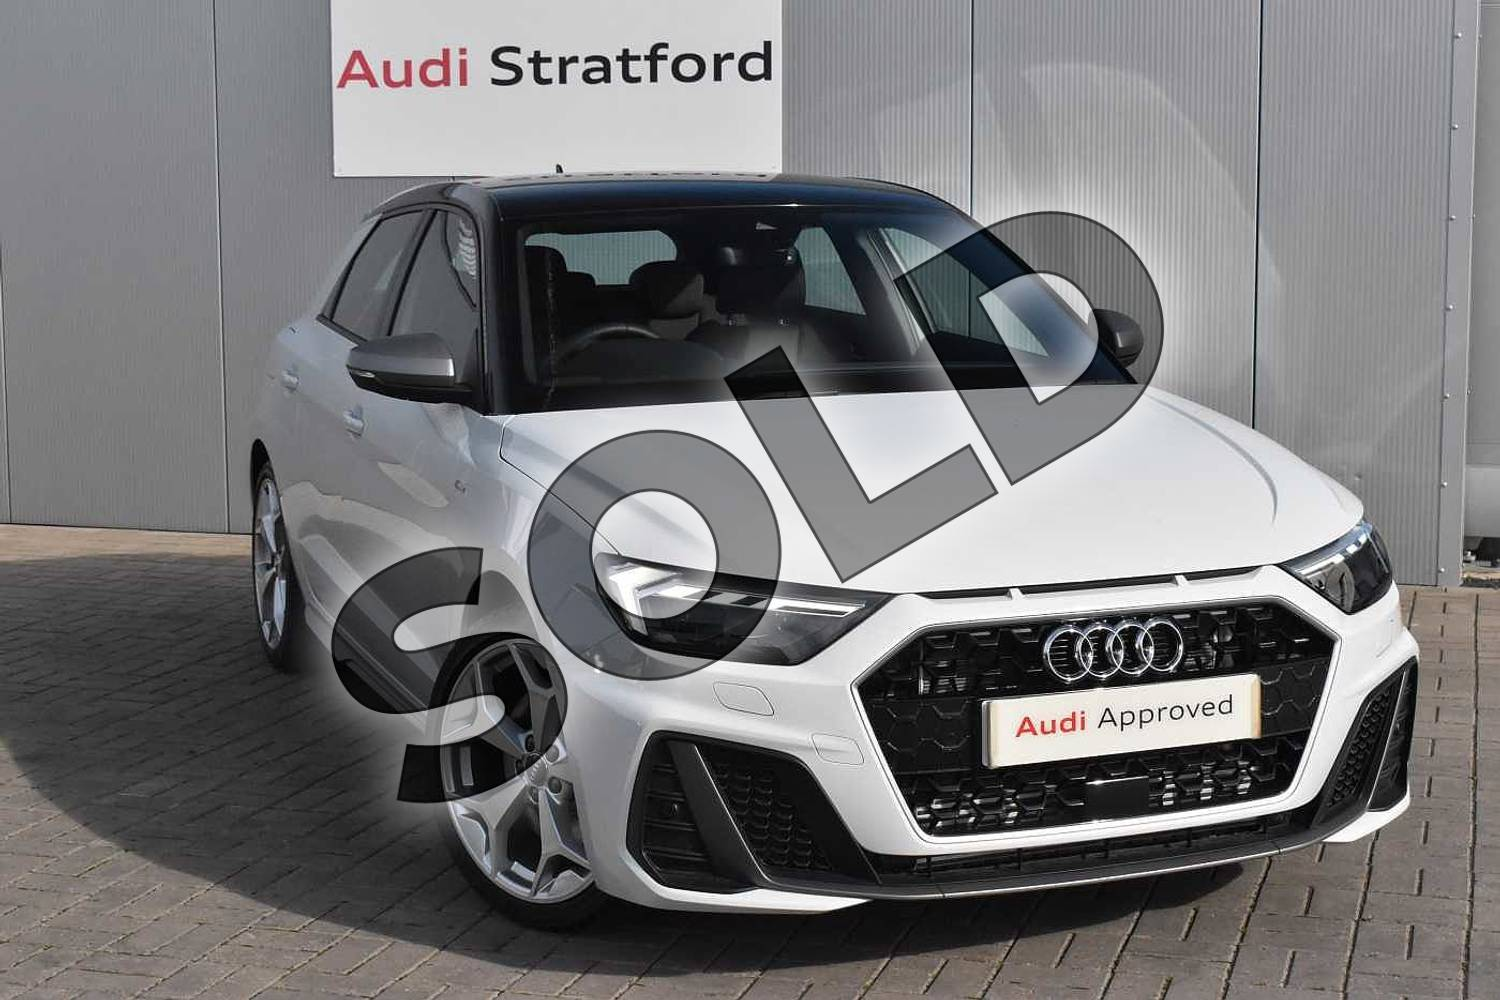 2020 Audi A1 Sportback 40 TFSI S Line Competition 5dr S Tronic in Glacier White Metallic at Stratford Audi